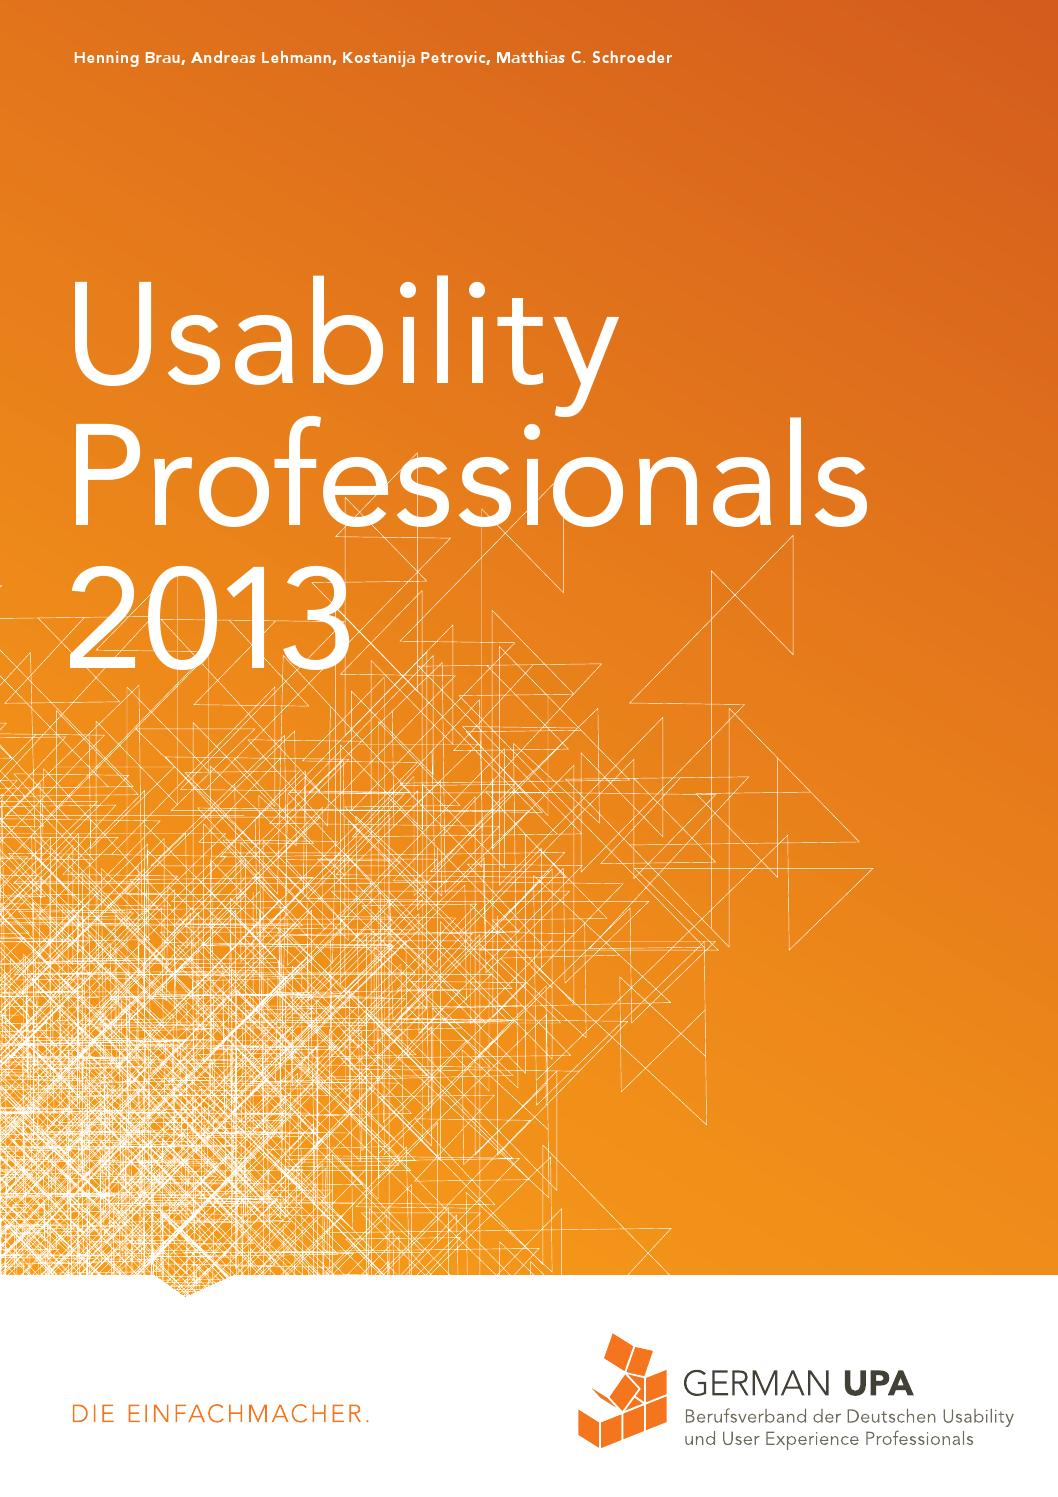 Usability Professionals 2013 - Tagungsband by German UPA e.V. - issuu